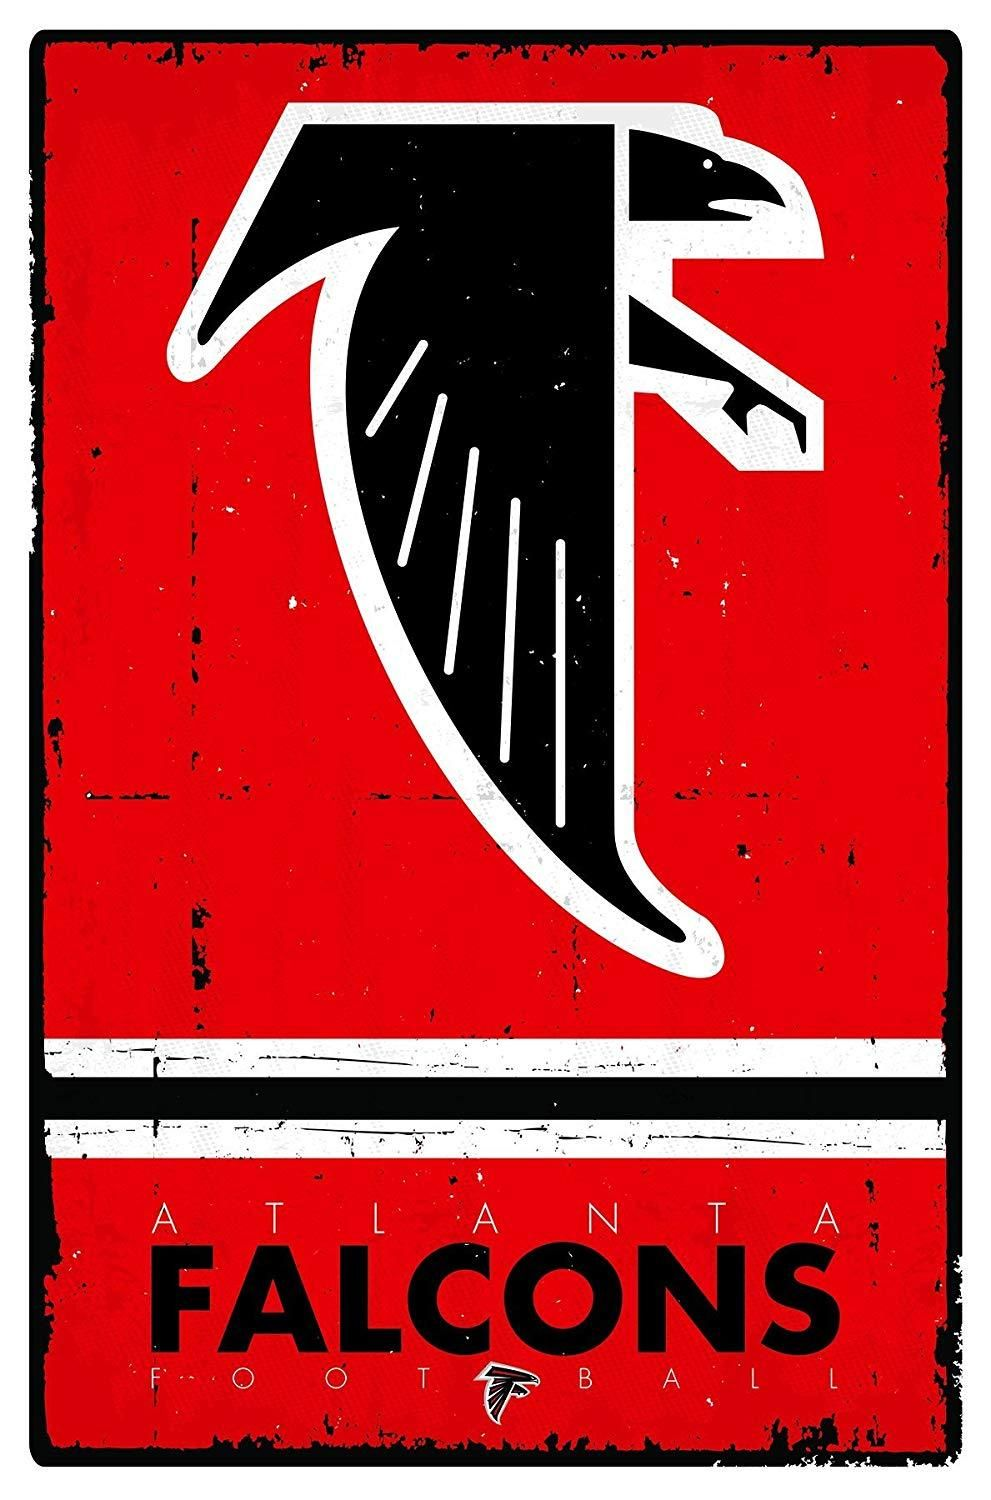 Atlanta Falcons Throwback 22x34 Football Poster Atlanta Falcons Official Nfl Football Nfl Football Teams